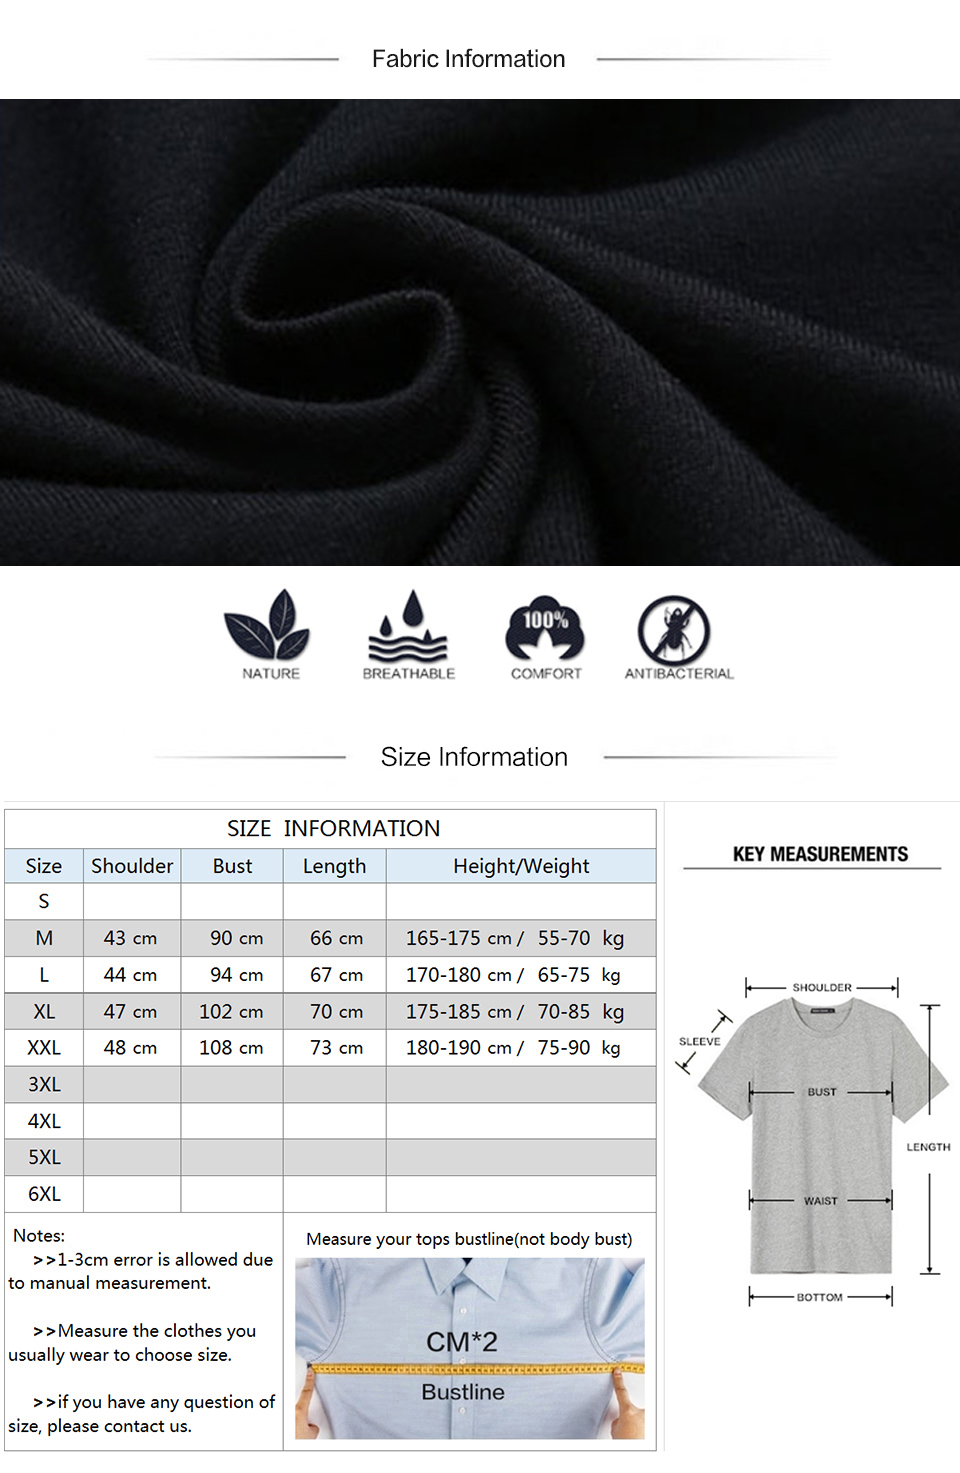 2017-Summer-Men39s-T-shirt-Fashion-Casual-printing-Short-Sleeve-Elasticity-T-shirt-SizeM-2XL-V7S1T07-32799500820